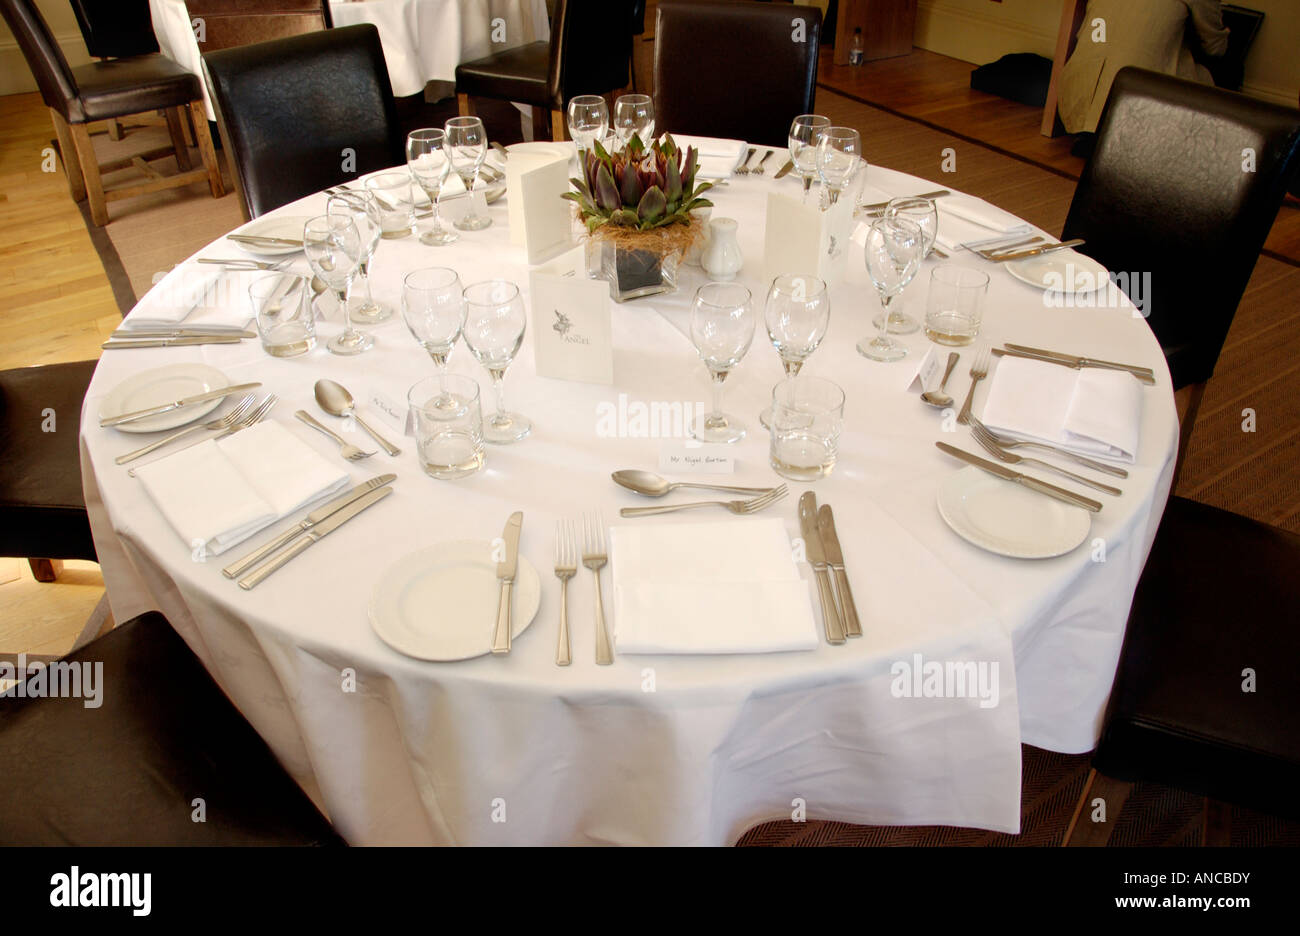 Formal table setting for lunch in Angel Hotel during Abergavenny Food Festival Monmouthshire South Wales UK & Formal Table Setting Stock Photos \u0026 Formal Table Setting Stock ...